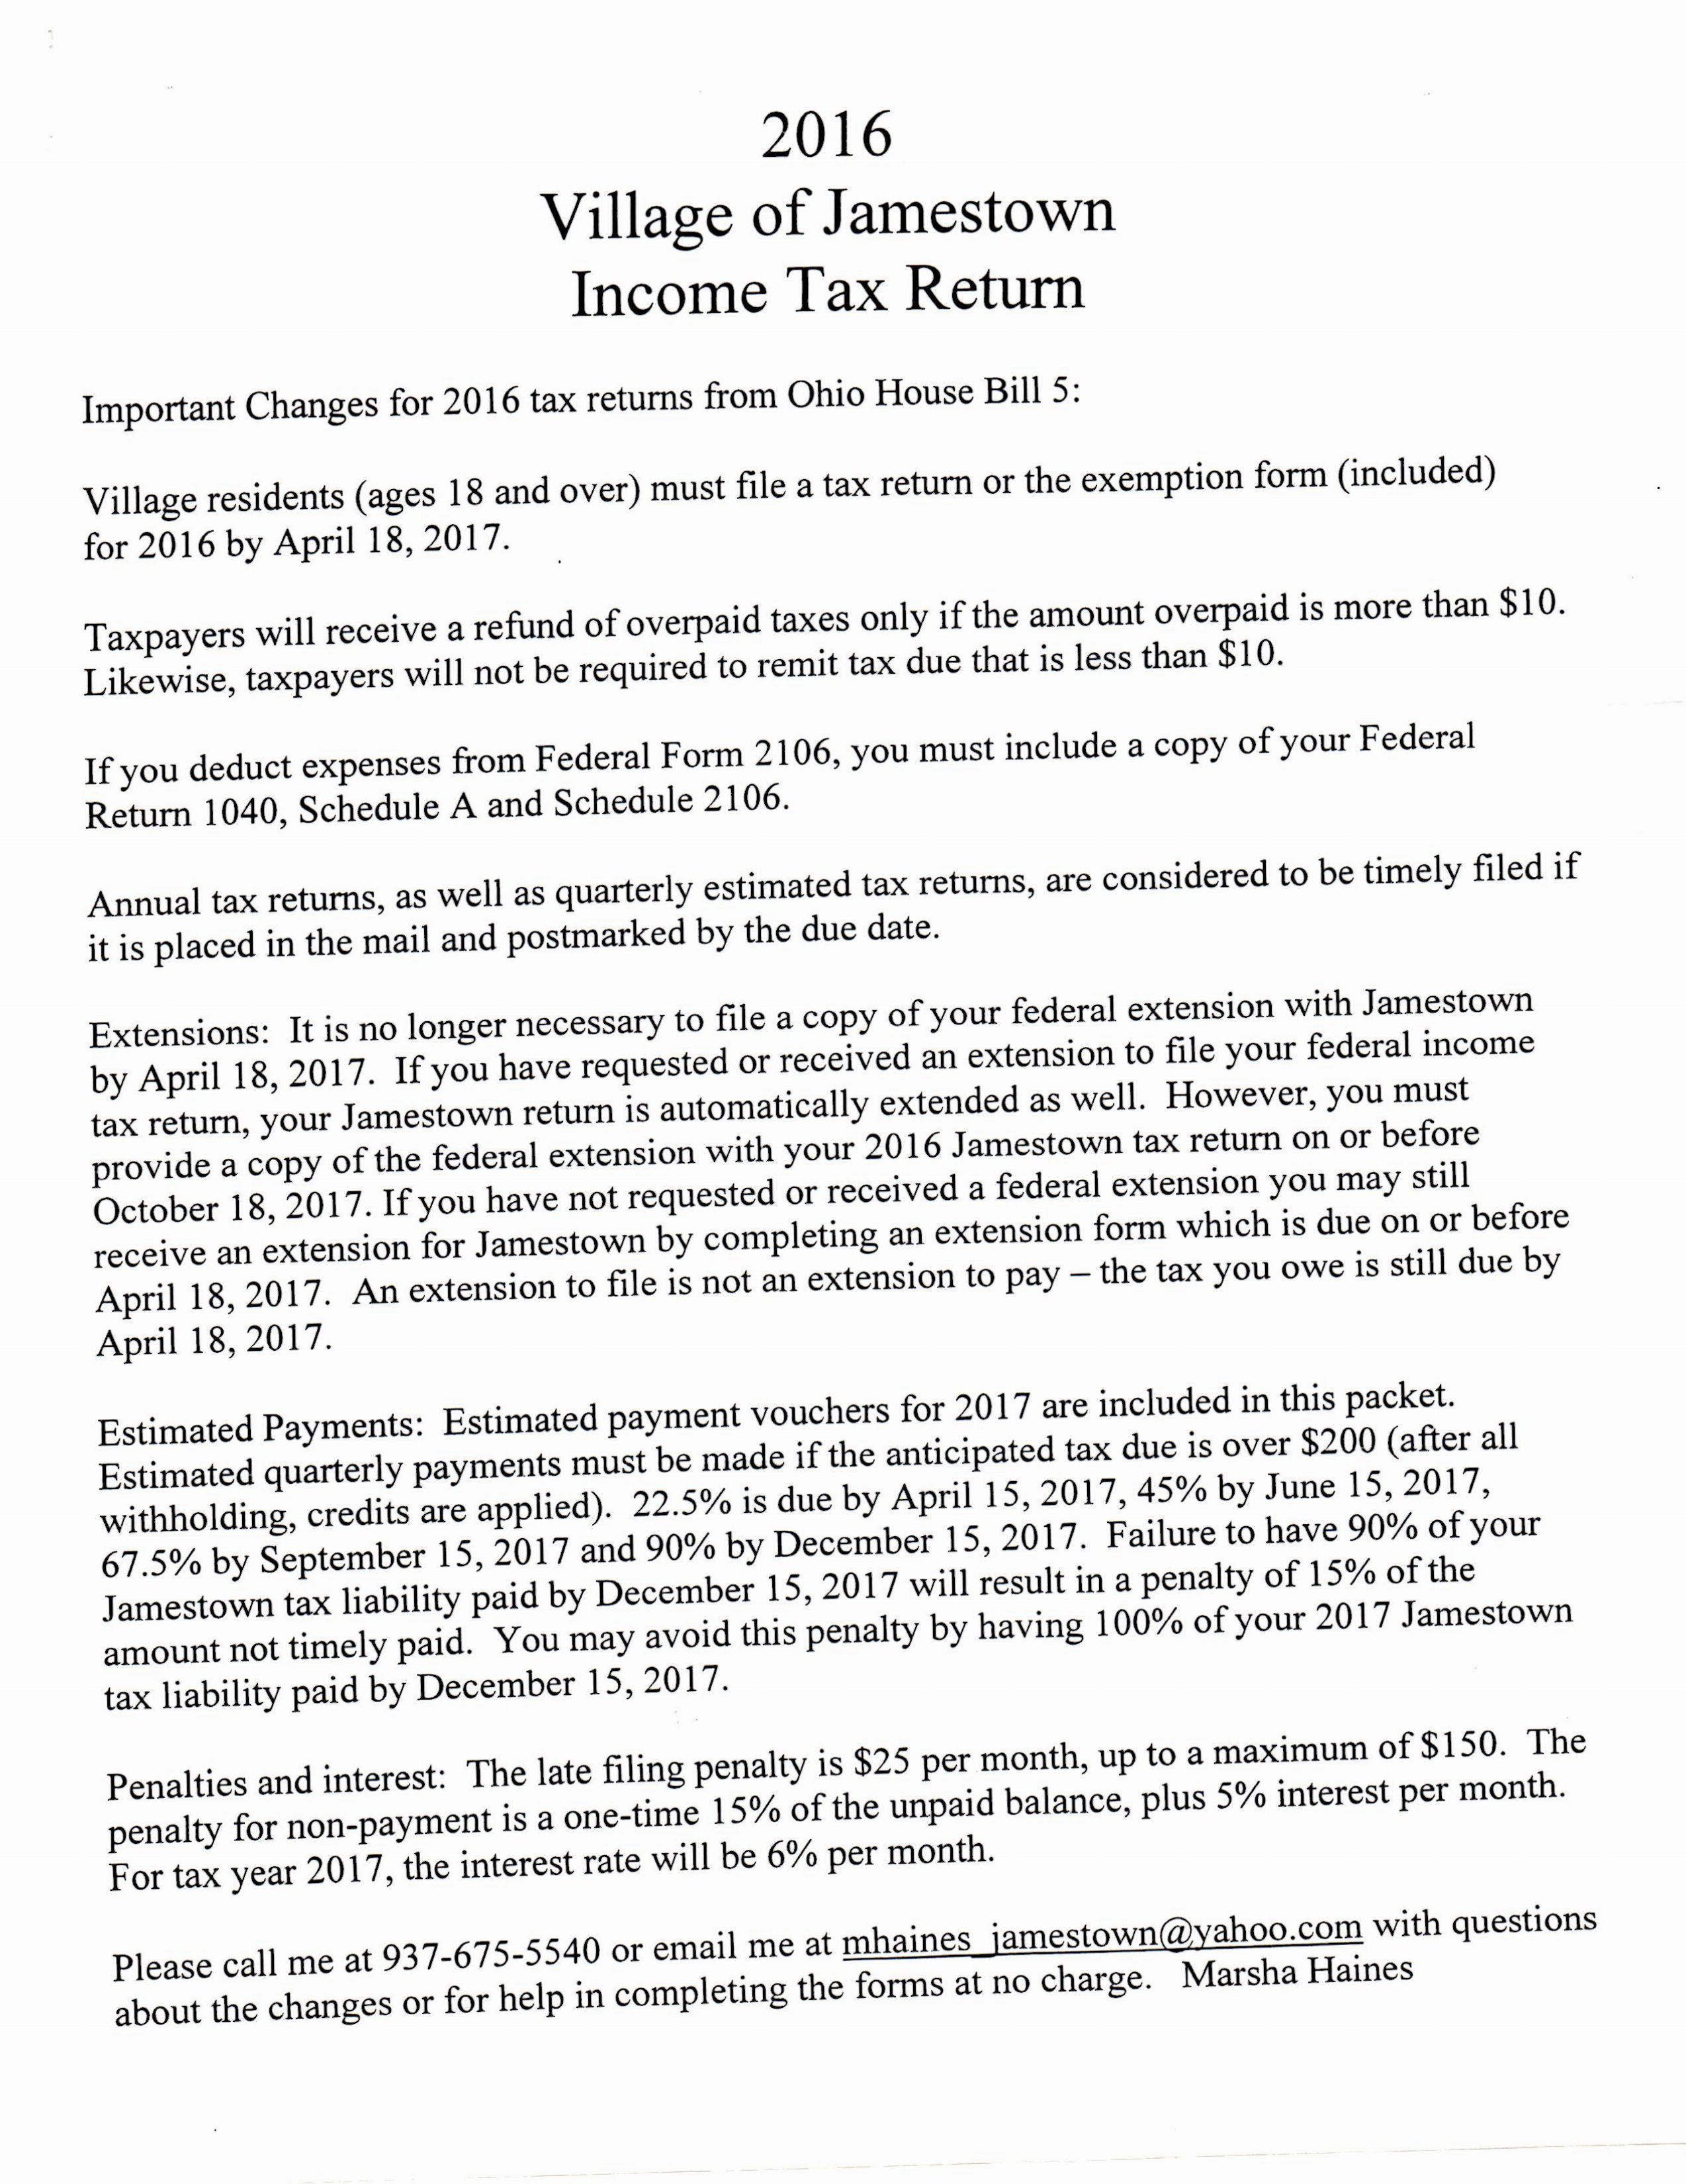 Tax Forms The Village Of Jamestown